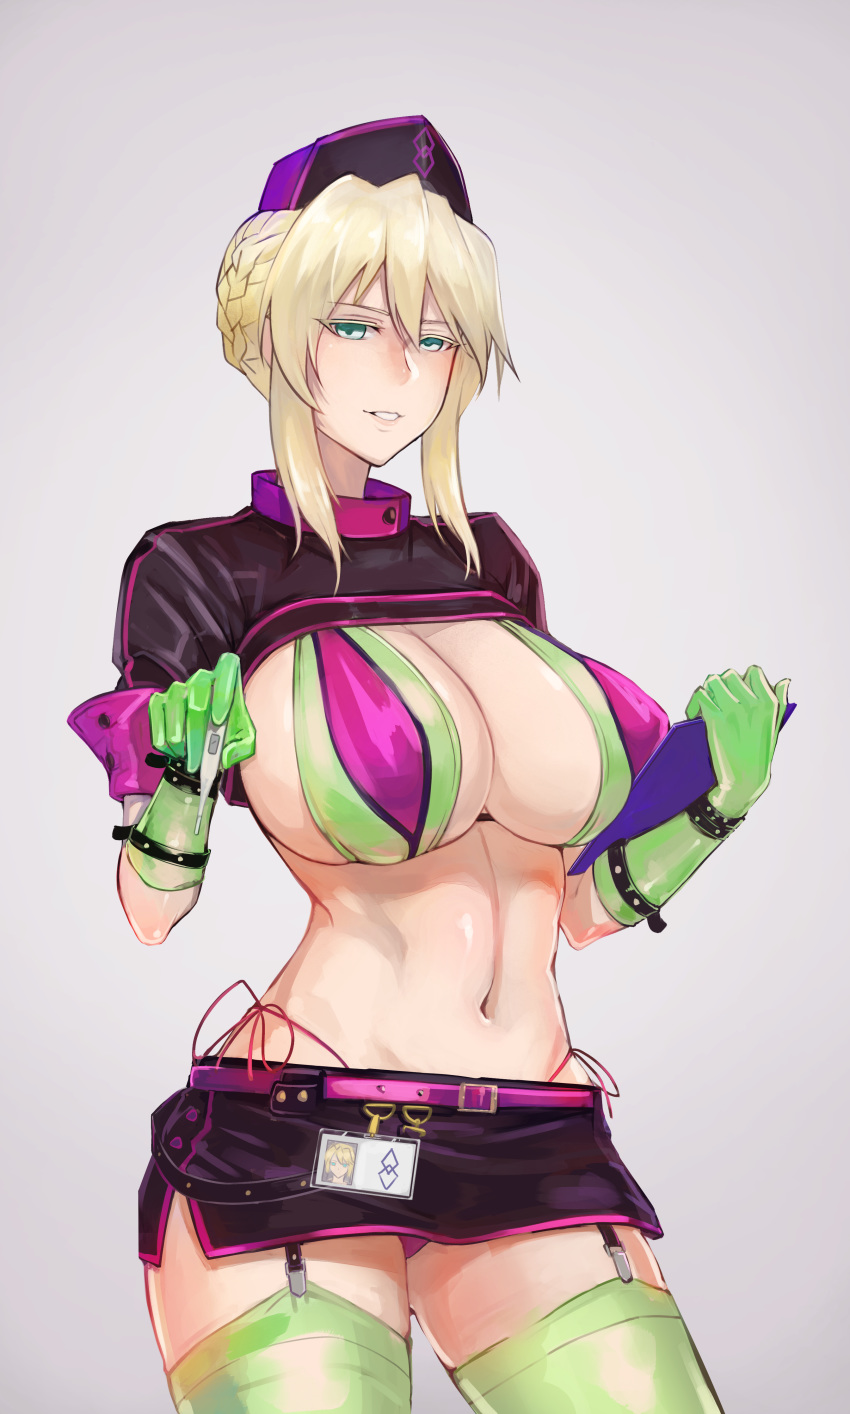 1girl absurdres artoria_pendragon_(all) artoria_pendragon_(lancer) bangs belt_buckle bikini black_hat black_skirt blonde_hair braid breasts buckle chinese_commentary cleavage clipboard commentary_request cosplay cowboy_shot eyebrows_visible_through_hair fate/grand_order fate_(series) florence_nightingale_(fate/grand_order) florence_nightingale_(fate/grand_order)_(cosplay) french_braid garter_straps gloves green_bikini green_eyes green_gloves green_legwear grey_background grin hair_between_eyes hair_bun half-closed_eyes hat highleg highleg_bikini highres holding holding_clipboard huge_breasts huitu_xigai id_card layered_bikini looking_at_viewer miniskirt navel nurse_cap parted_lips pink_belt purple_bikini purple_hat short_hair short_sleeves shrug_(clothing) side-tie_bikini sidelocks skirt smile solo standing stomach swimsuit thighhighs trick_or_treatment